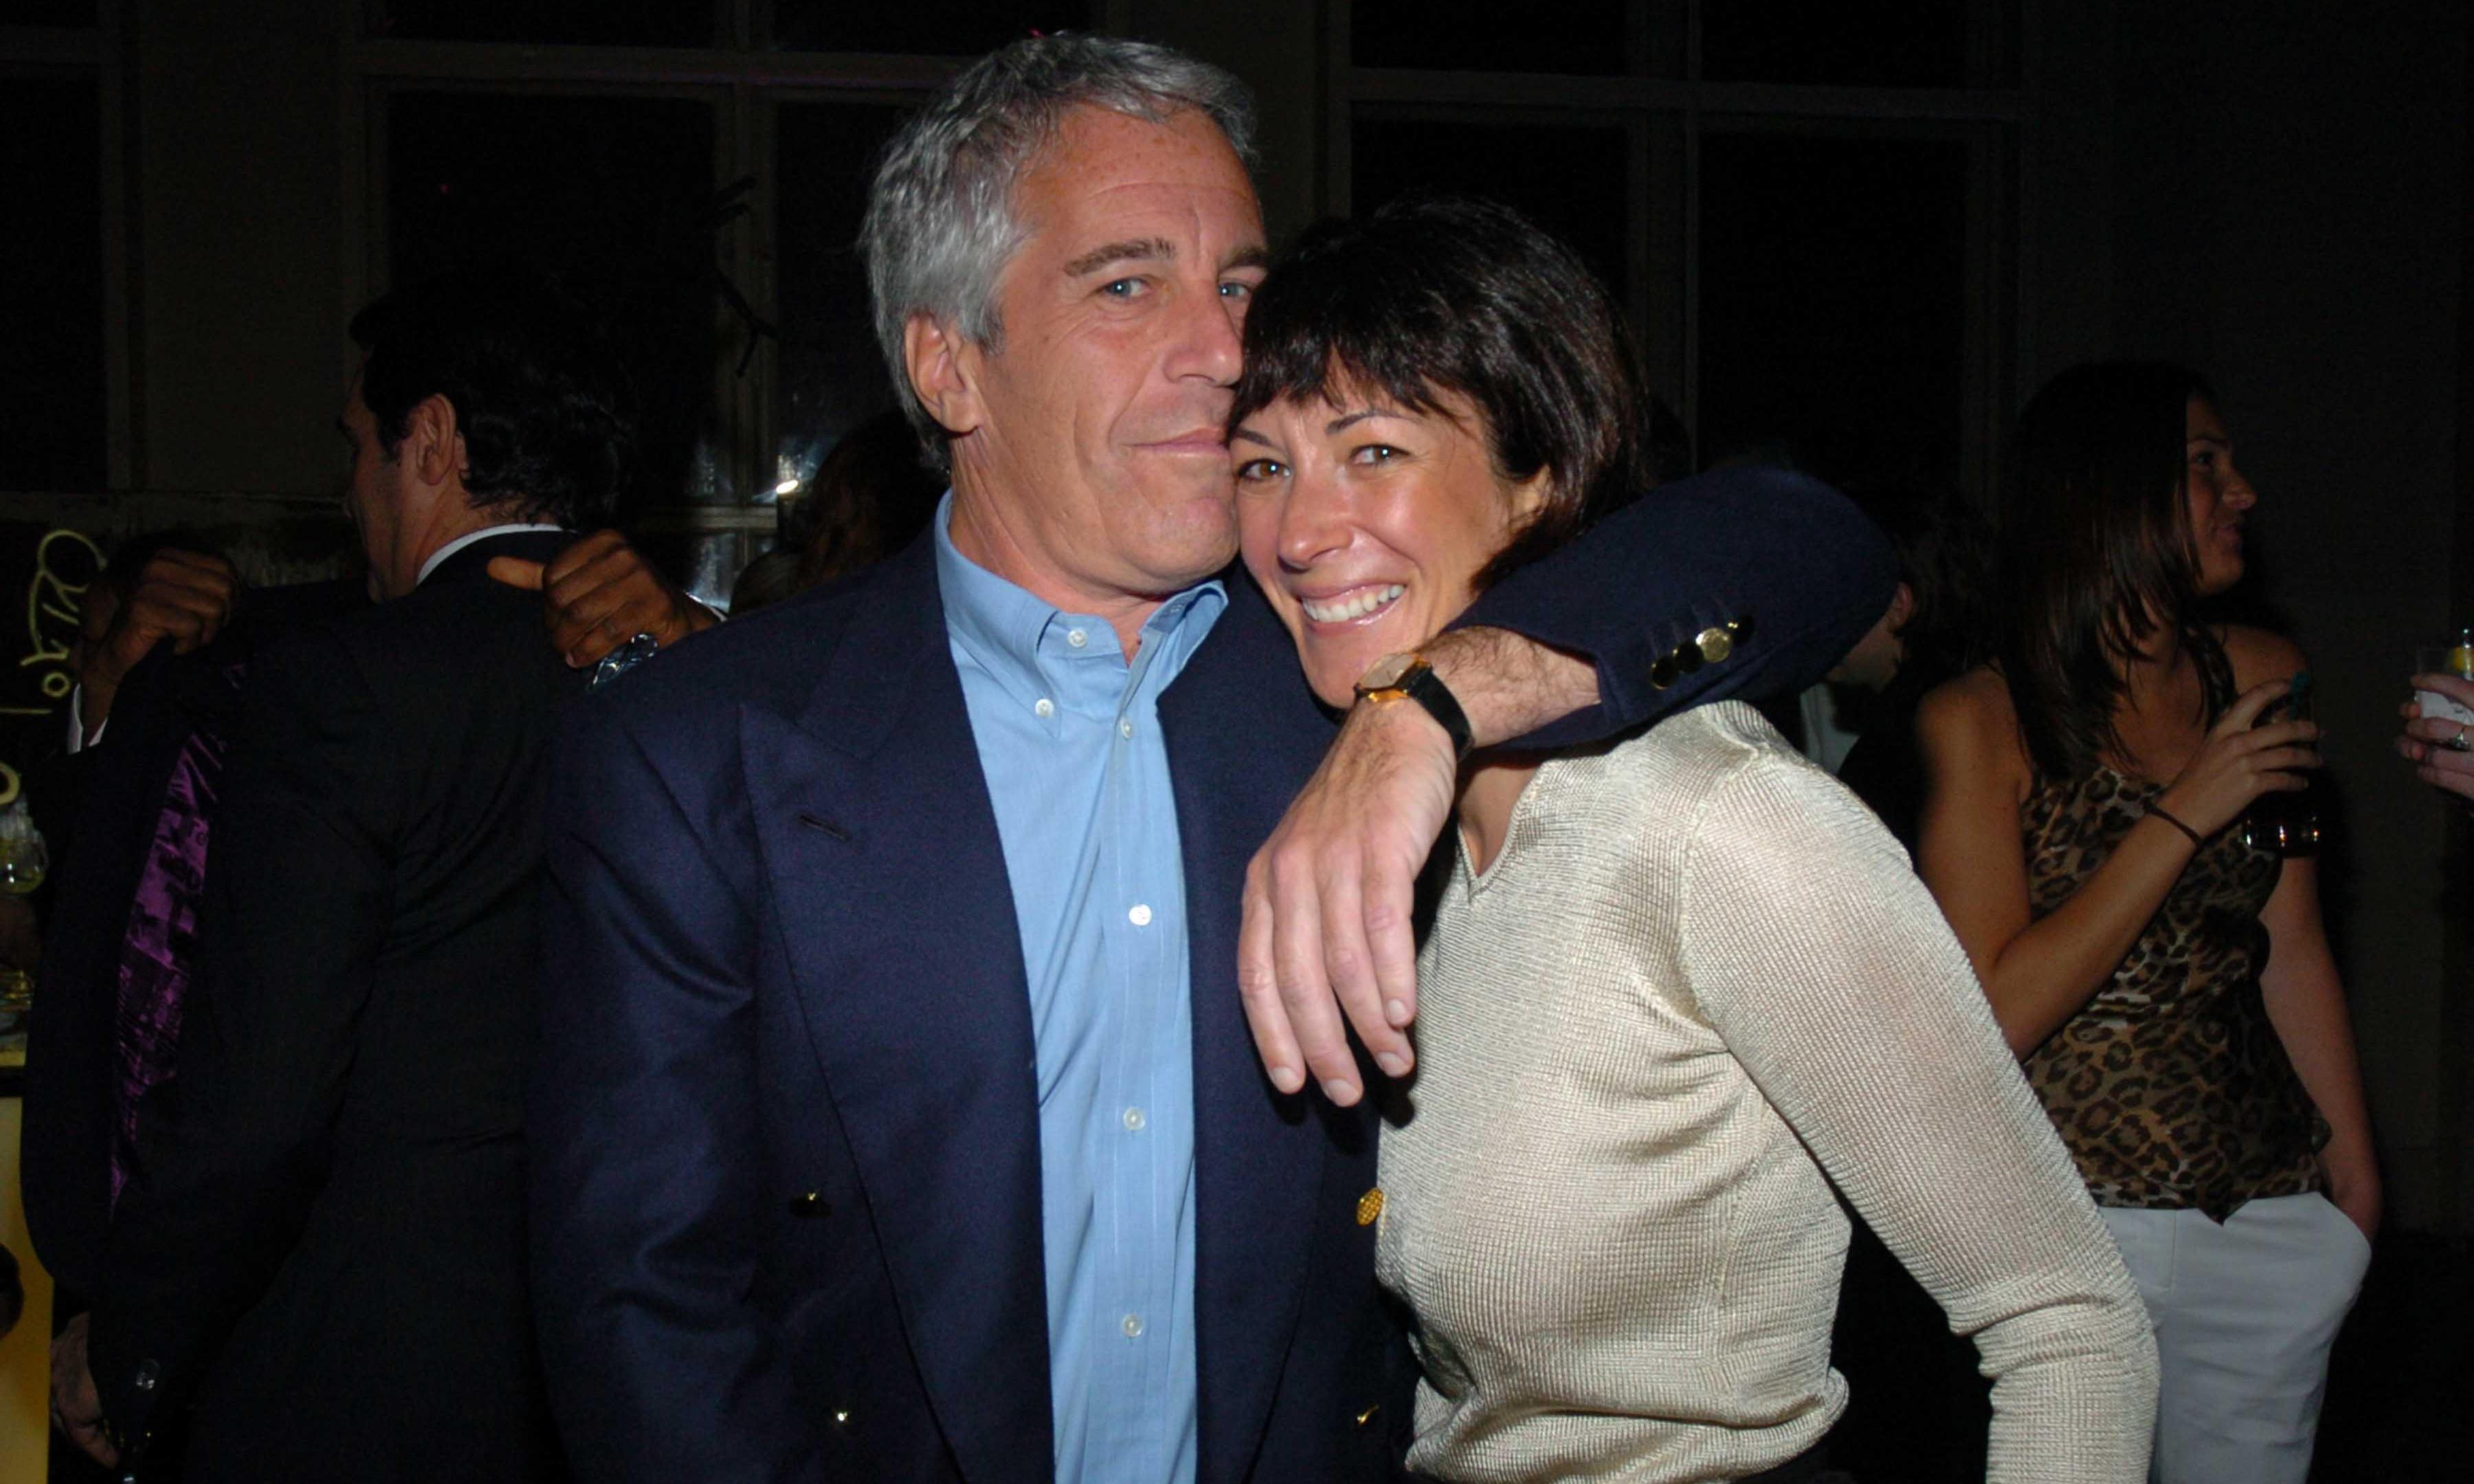 Ghislaine Maxwell seen in public for first time since Epstein death